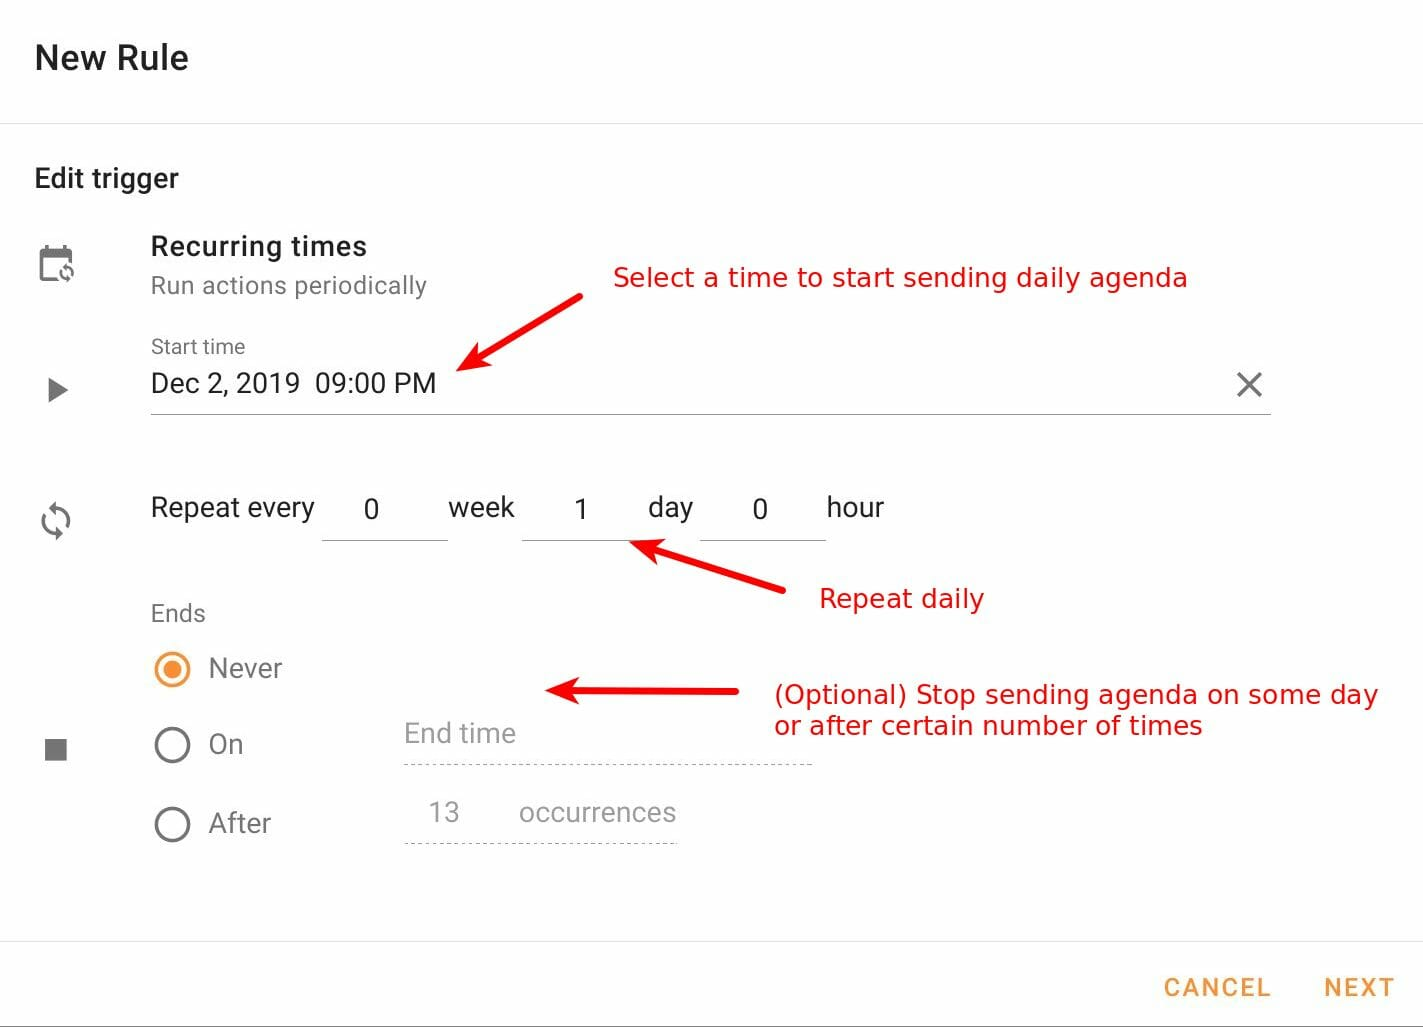 Configure recurring times for daily agenda in Foresight